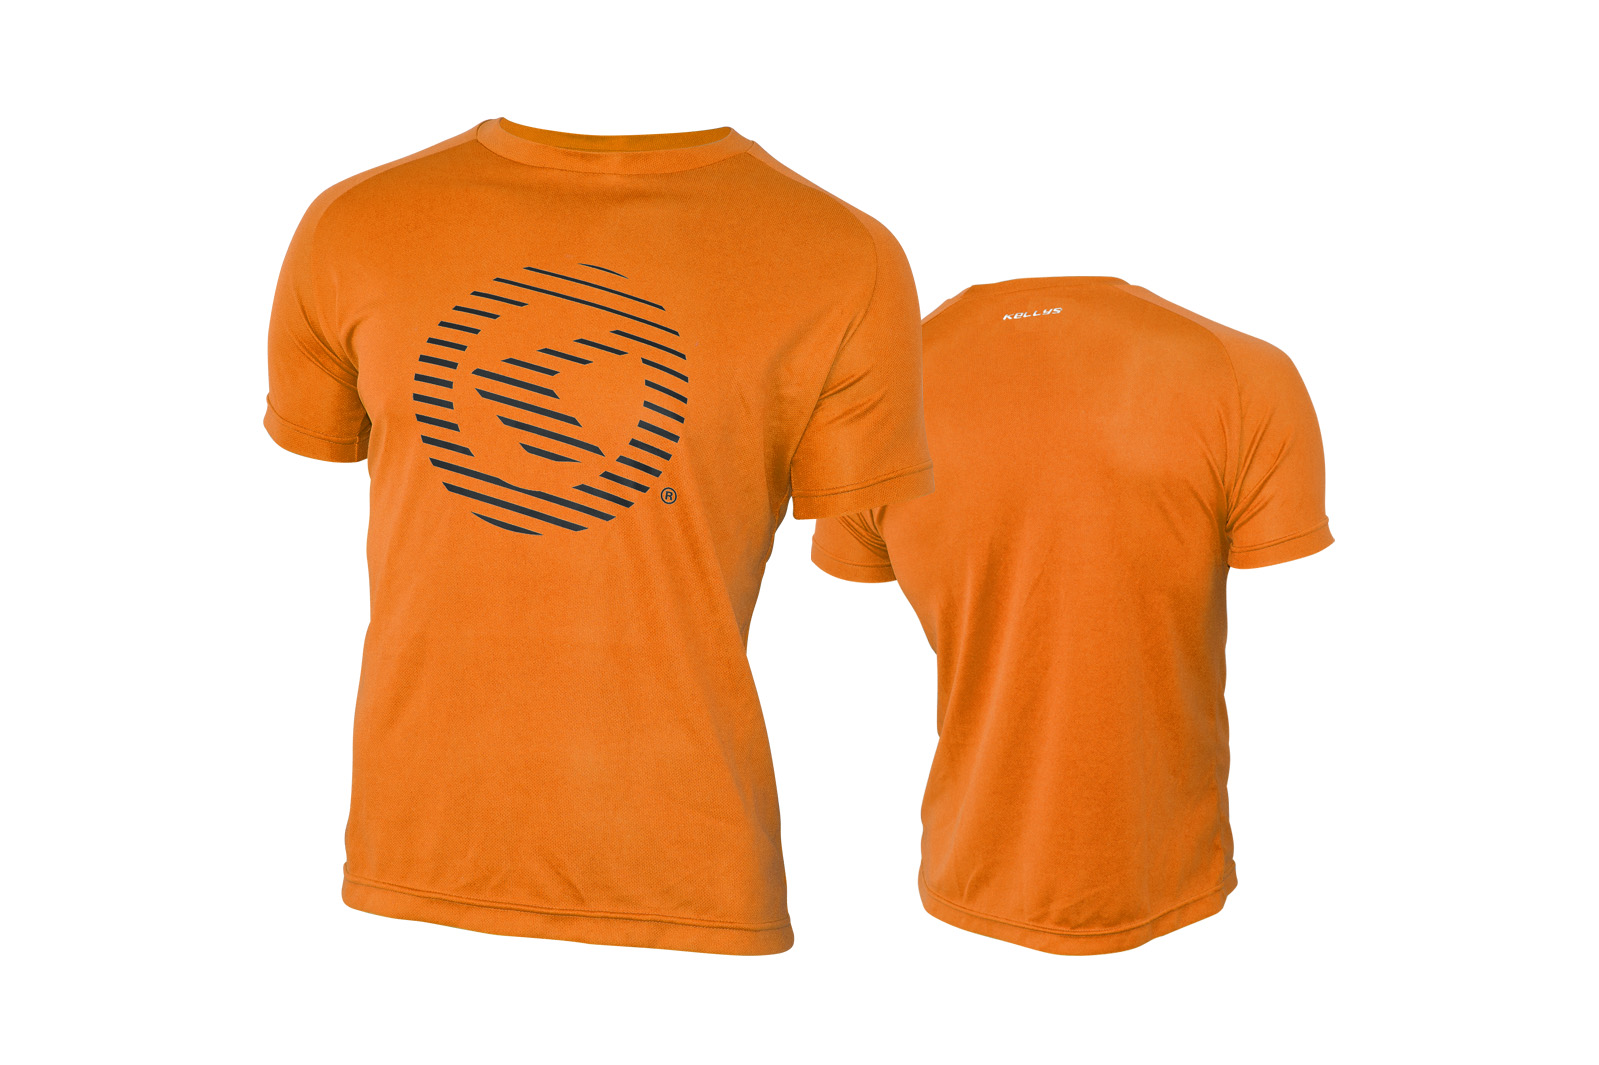 T-Shirt KELLYS ACTIVE orange - XL - Mega Handelsgesellschaft